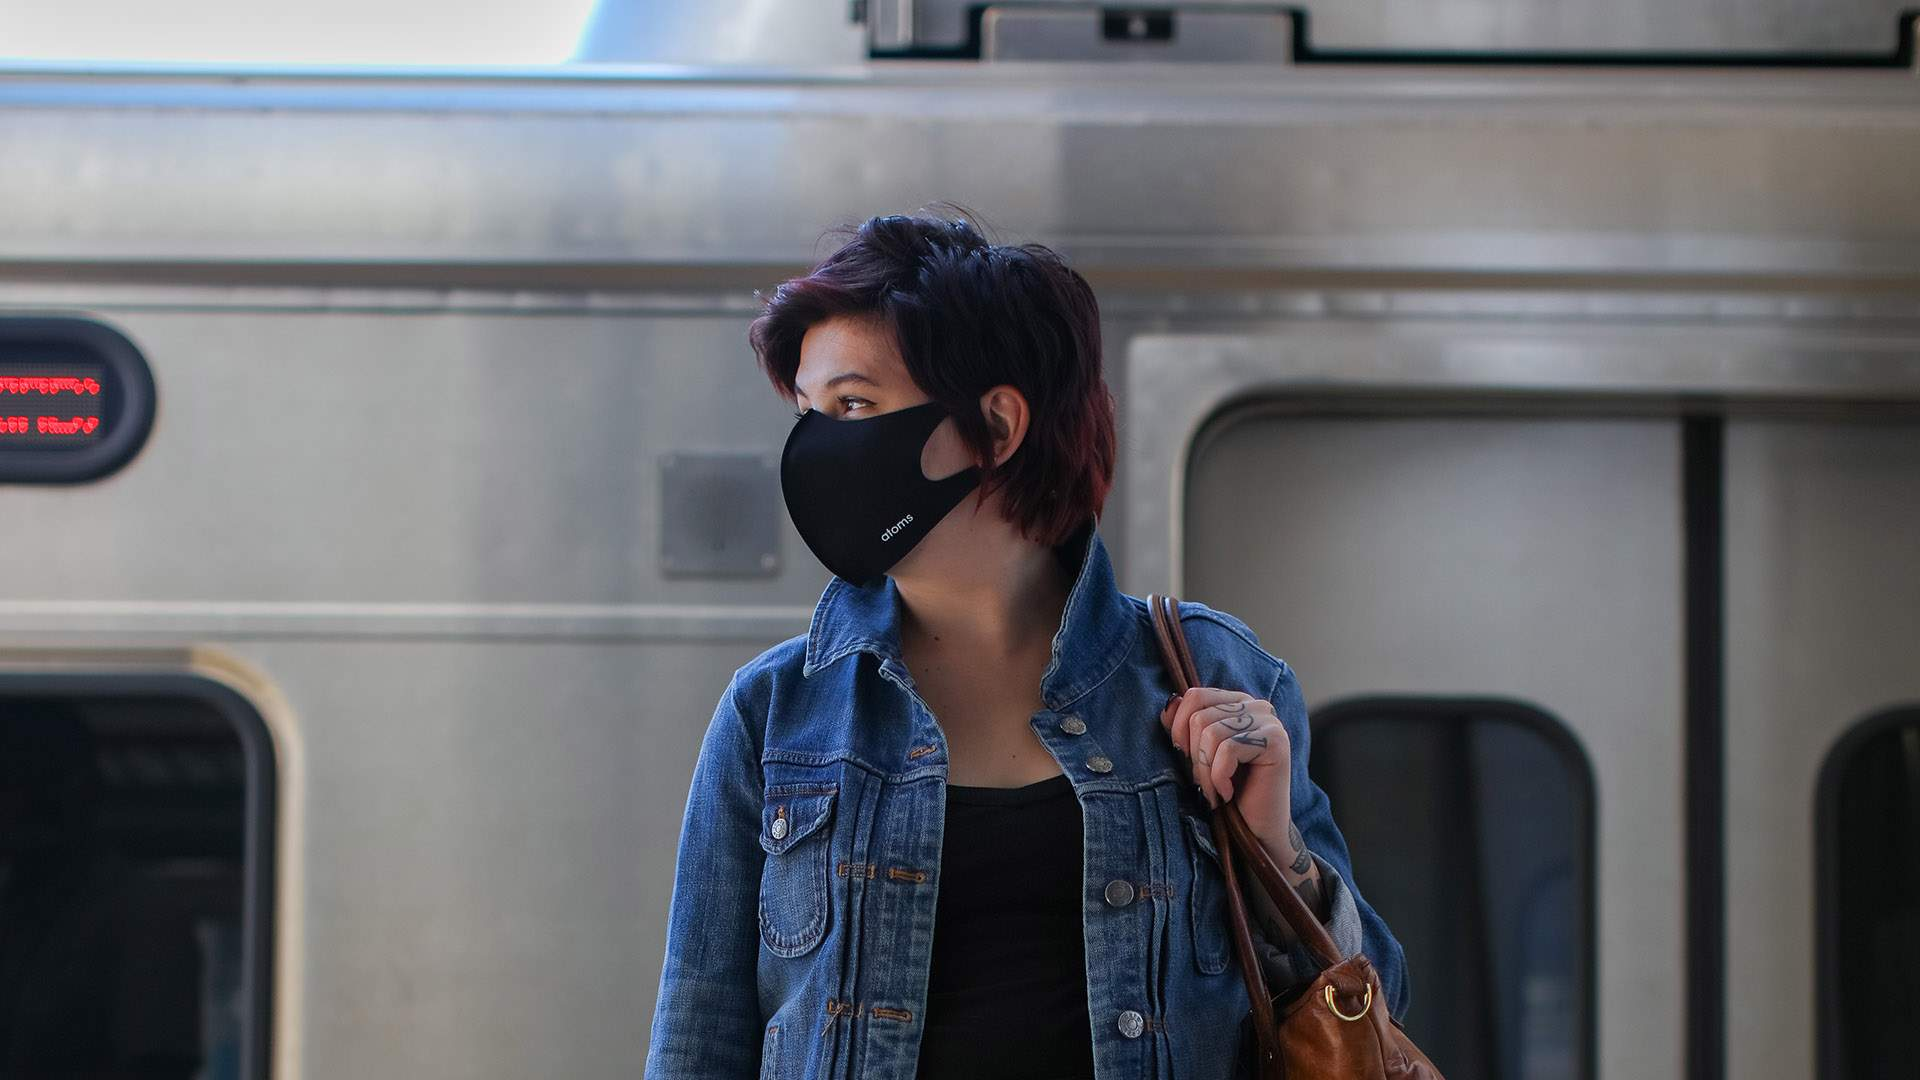 Masks Will Remain Compulsory on Public Transport and in Some Indoor Situations Until May 17